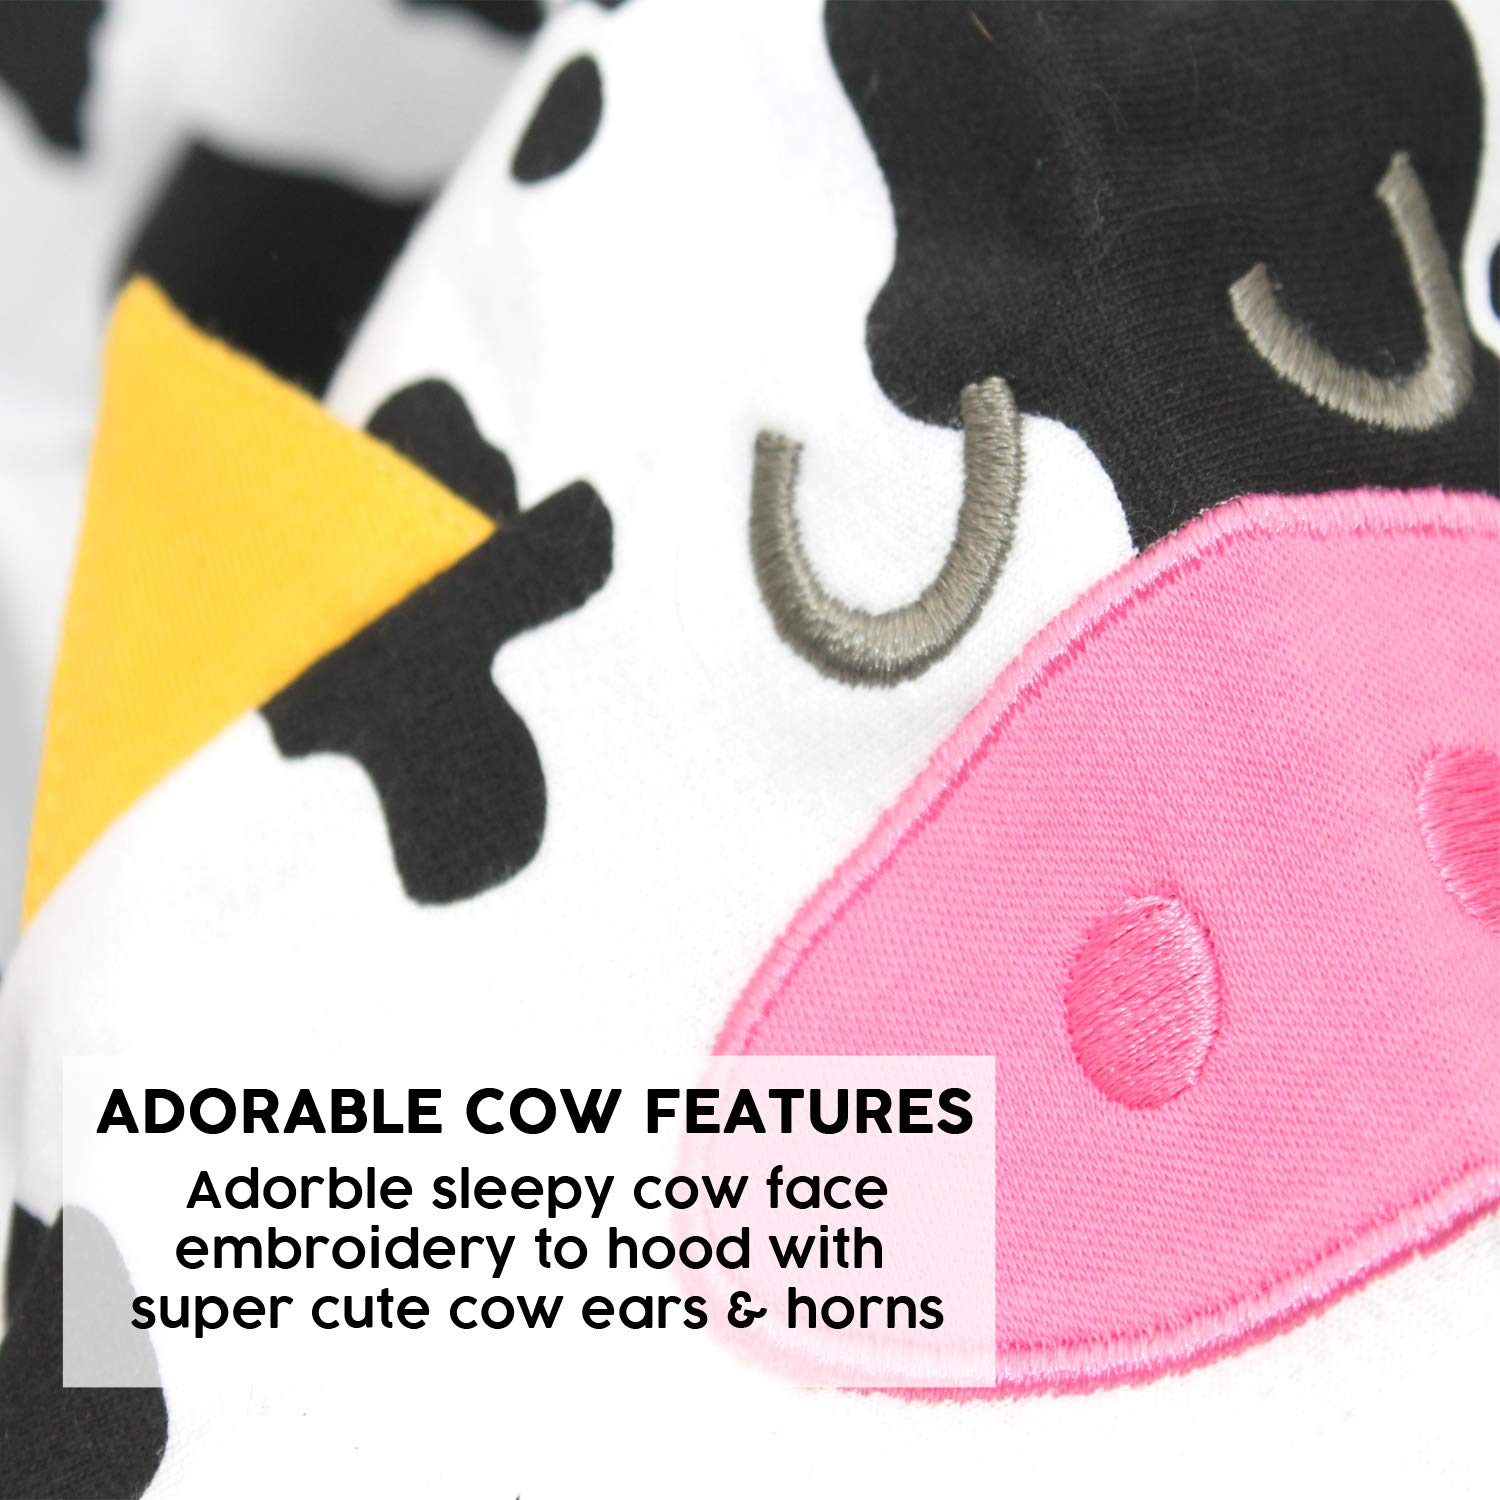 Baby Shower Gifts 6-12 Months Boy or Girl Cow Baby Romper Outfit for Boys or Girls New Cow Costume Cute Baby Clothes or 1st Baby Gift | 1 Cute Cow Hooded Zip Onesie Suit by BABY MOOS UK